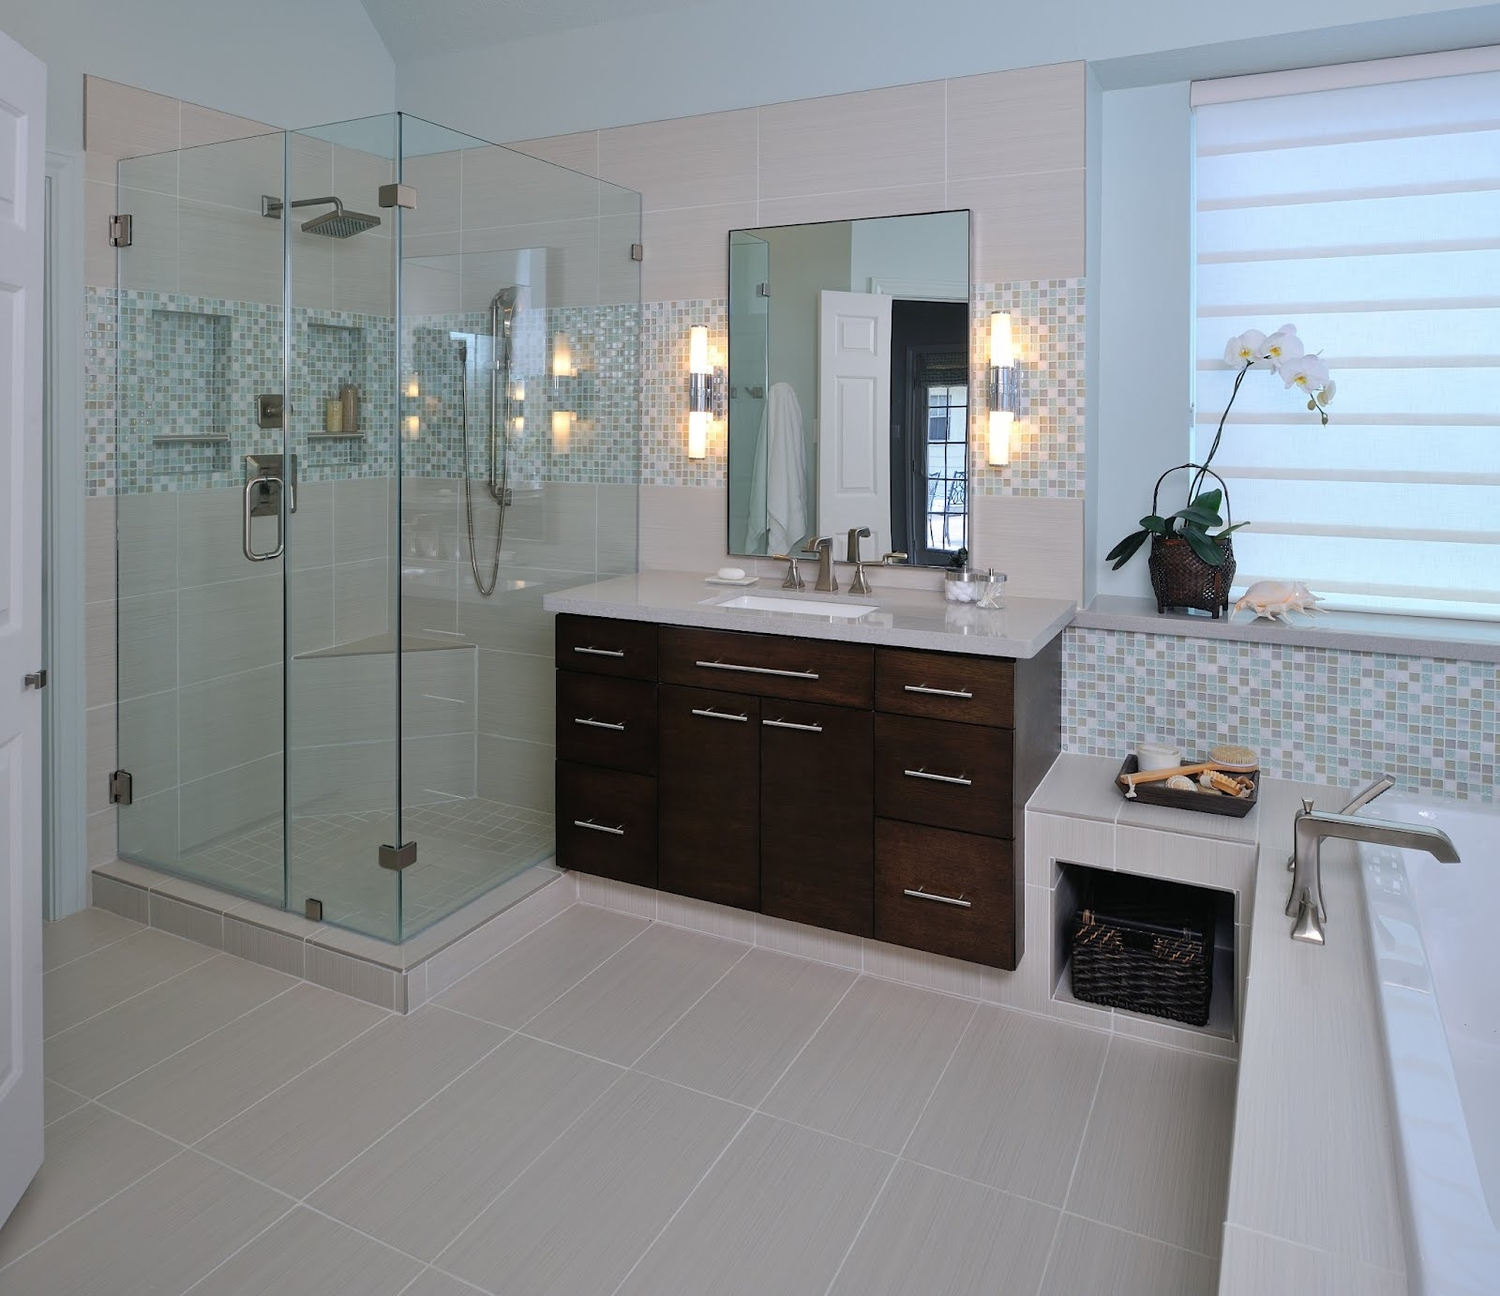 The granite gurus 8 beautiful master bathrooms for Full bathroom remodel